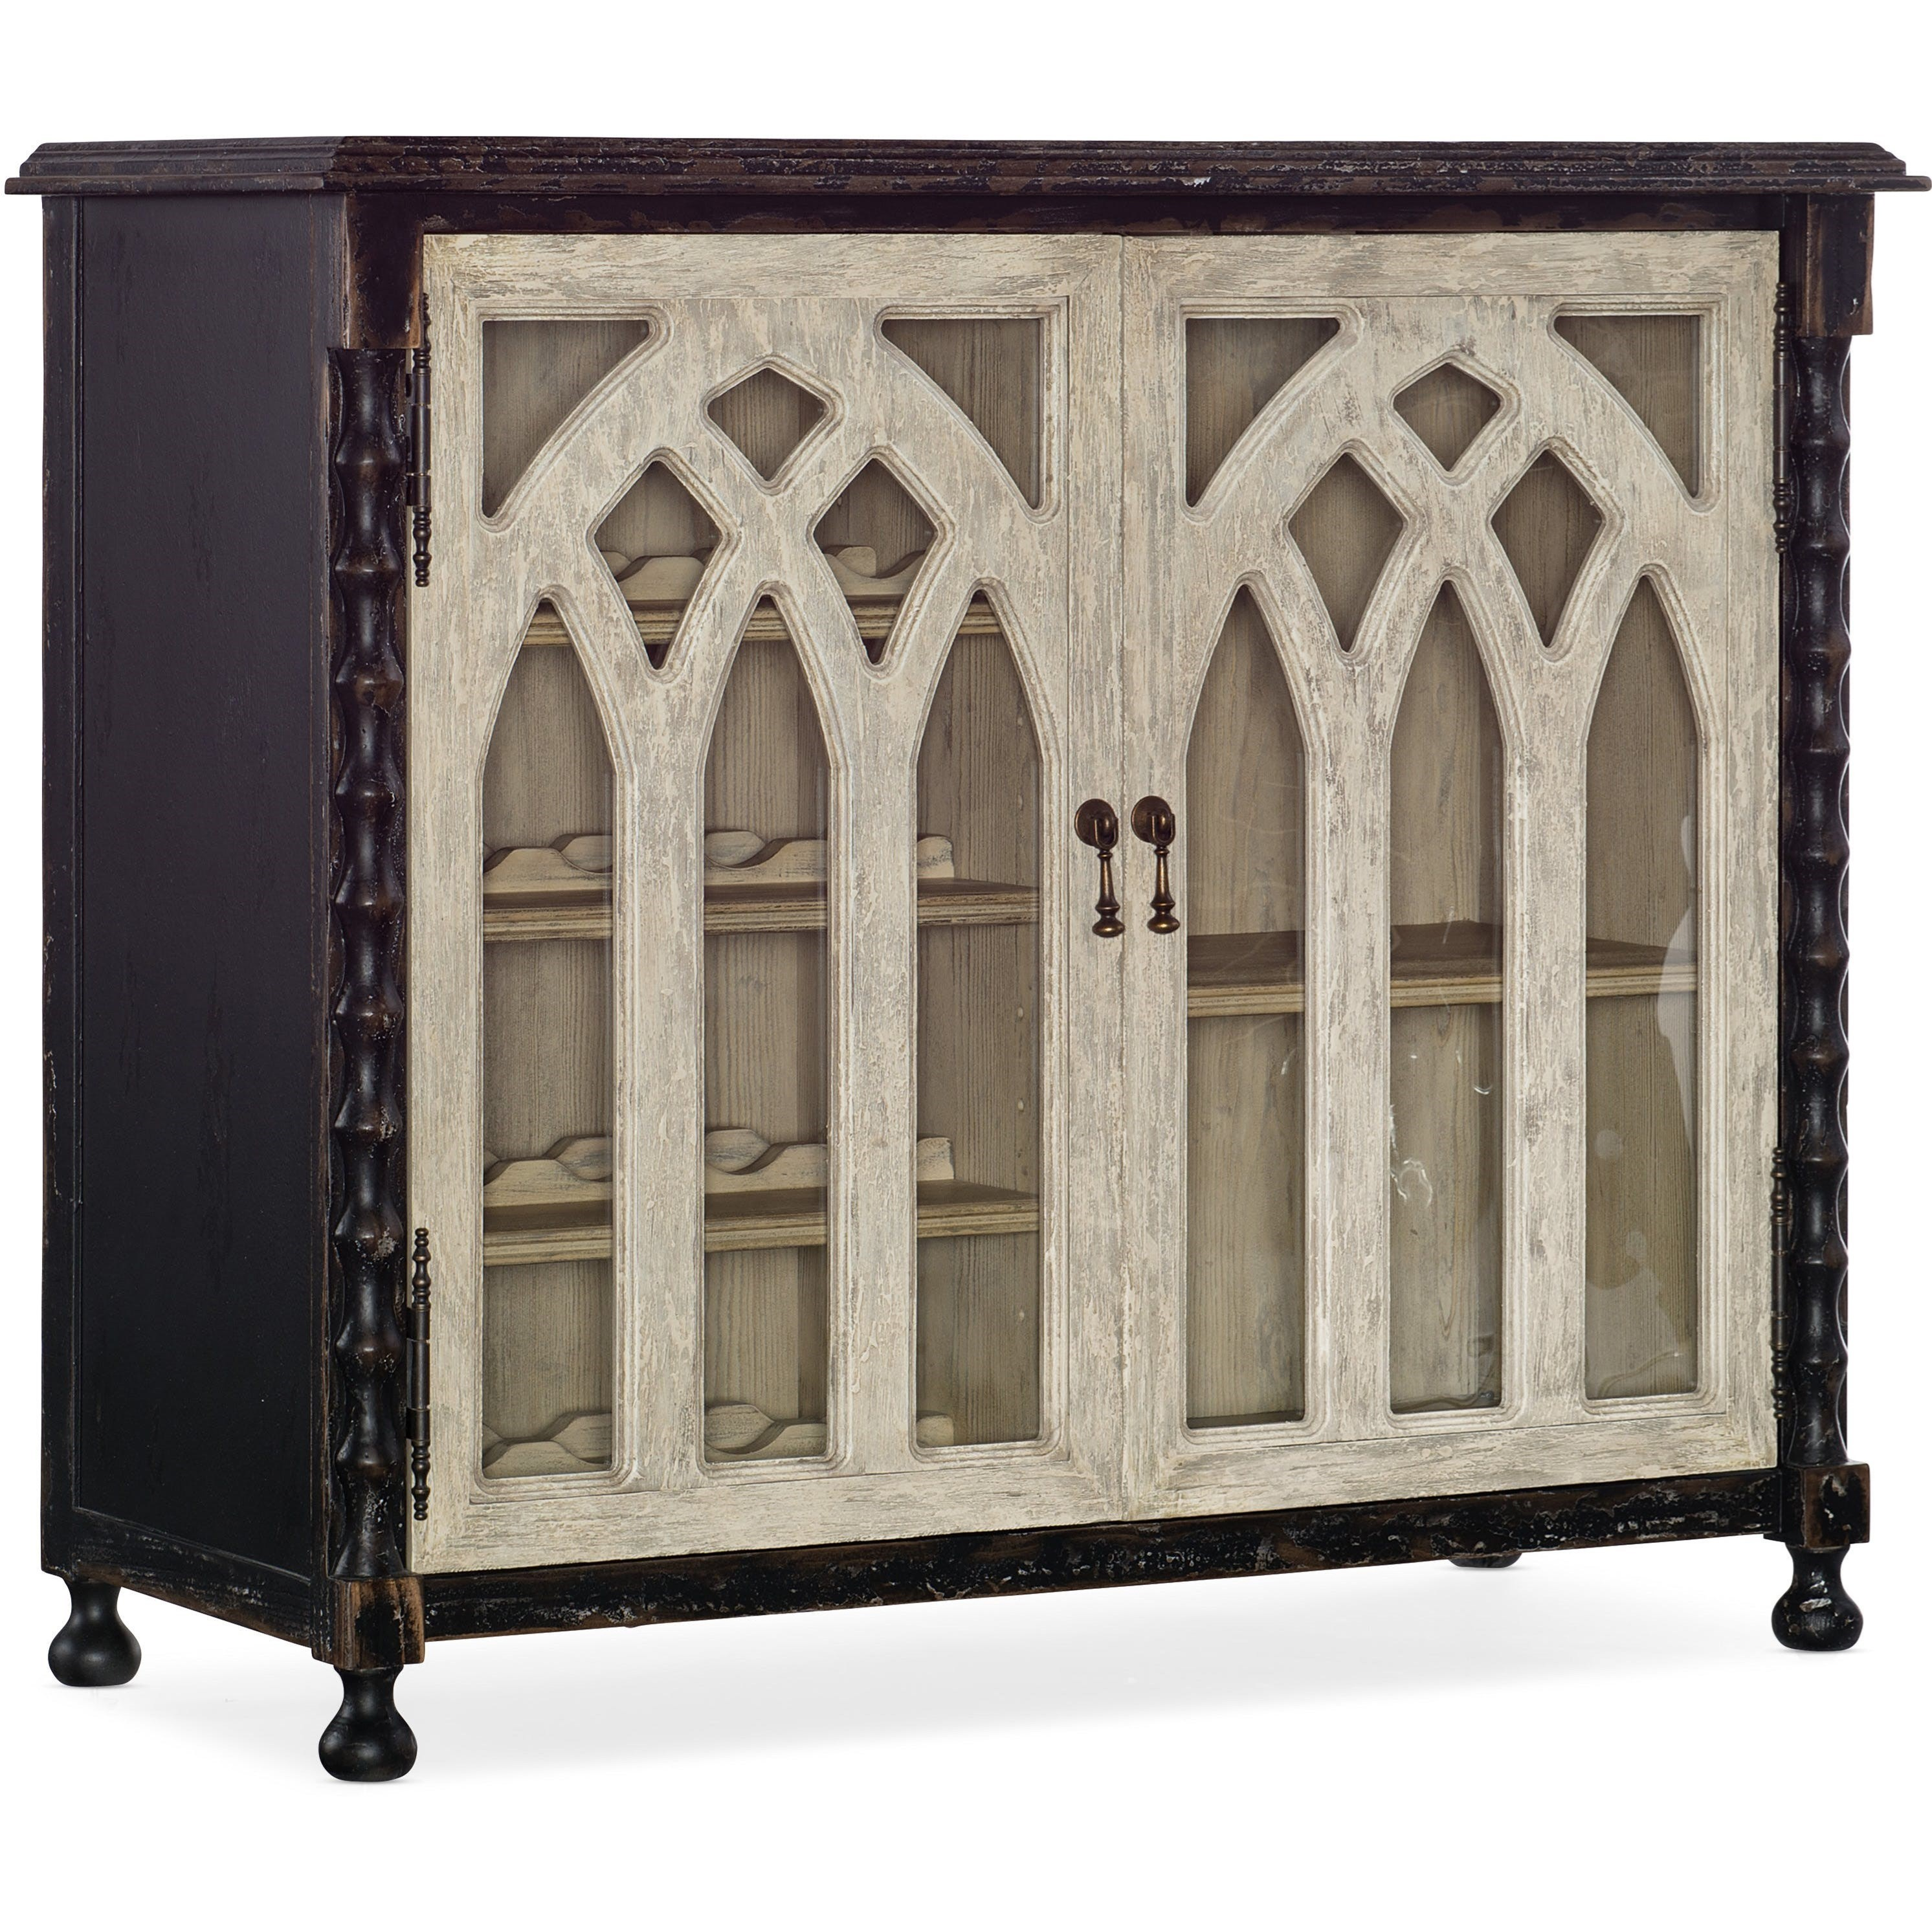 Ciao Bella Bar by Hooker Furniture at Miller Waldrop Furniture and Decor